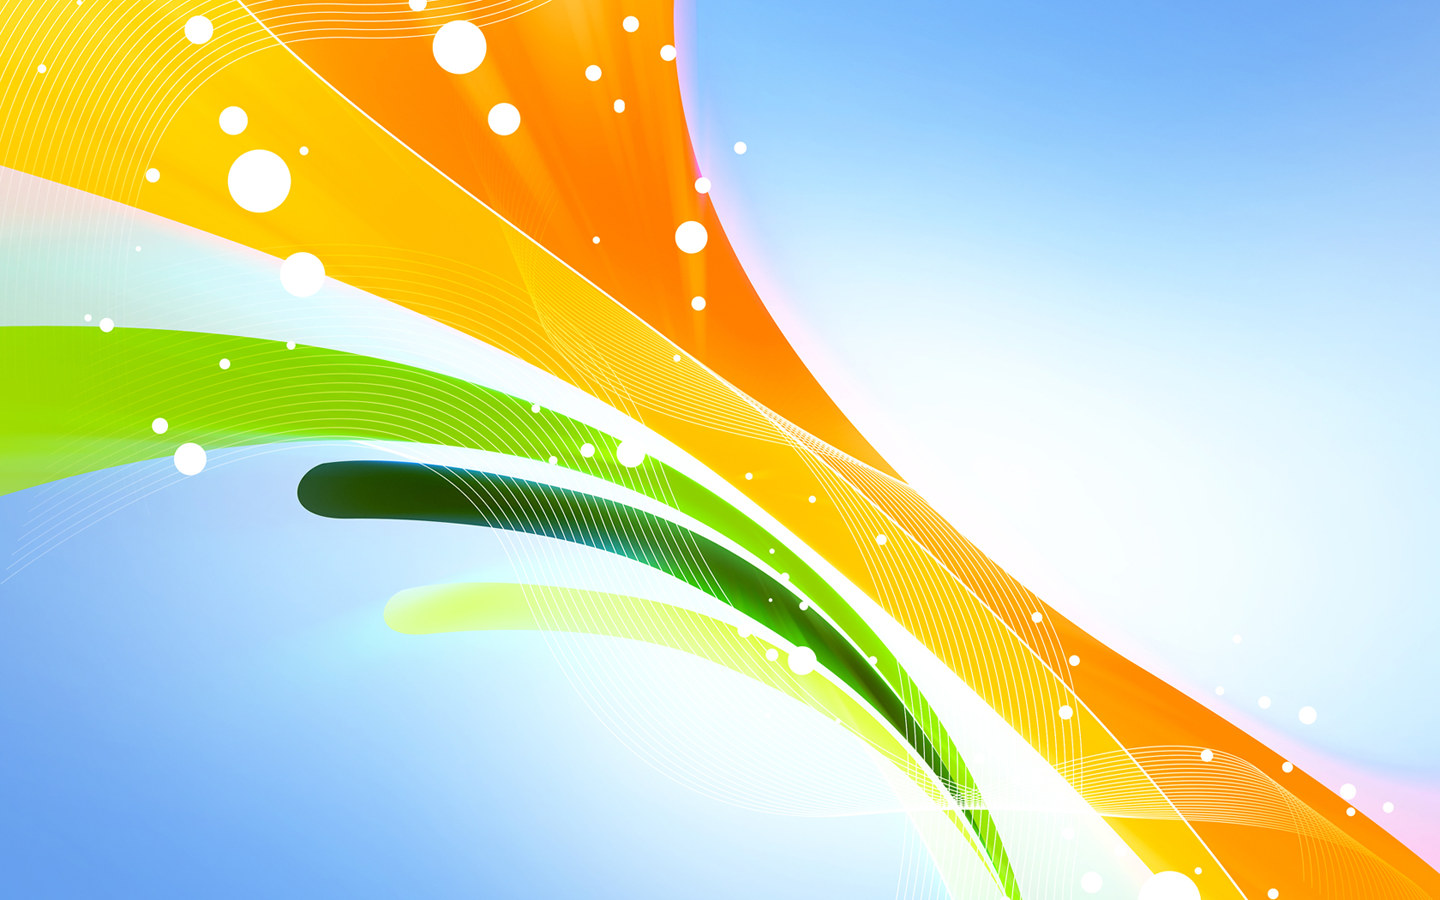 Abstract Backgrounds HD Wallpapers Pulse 1440x900